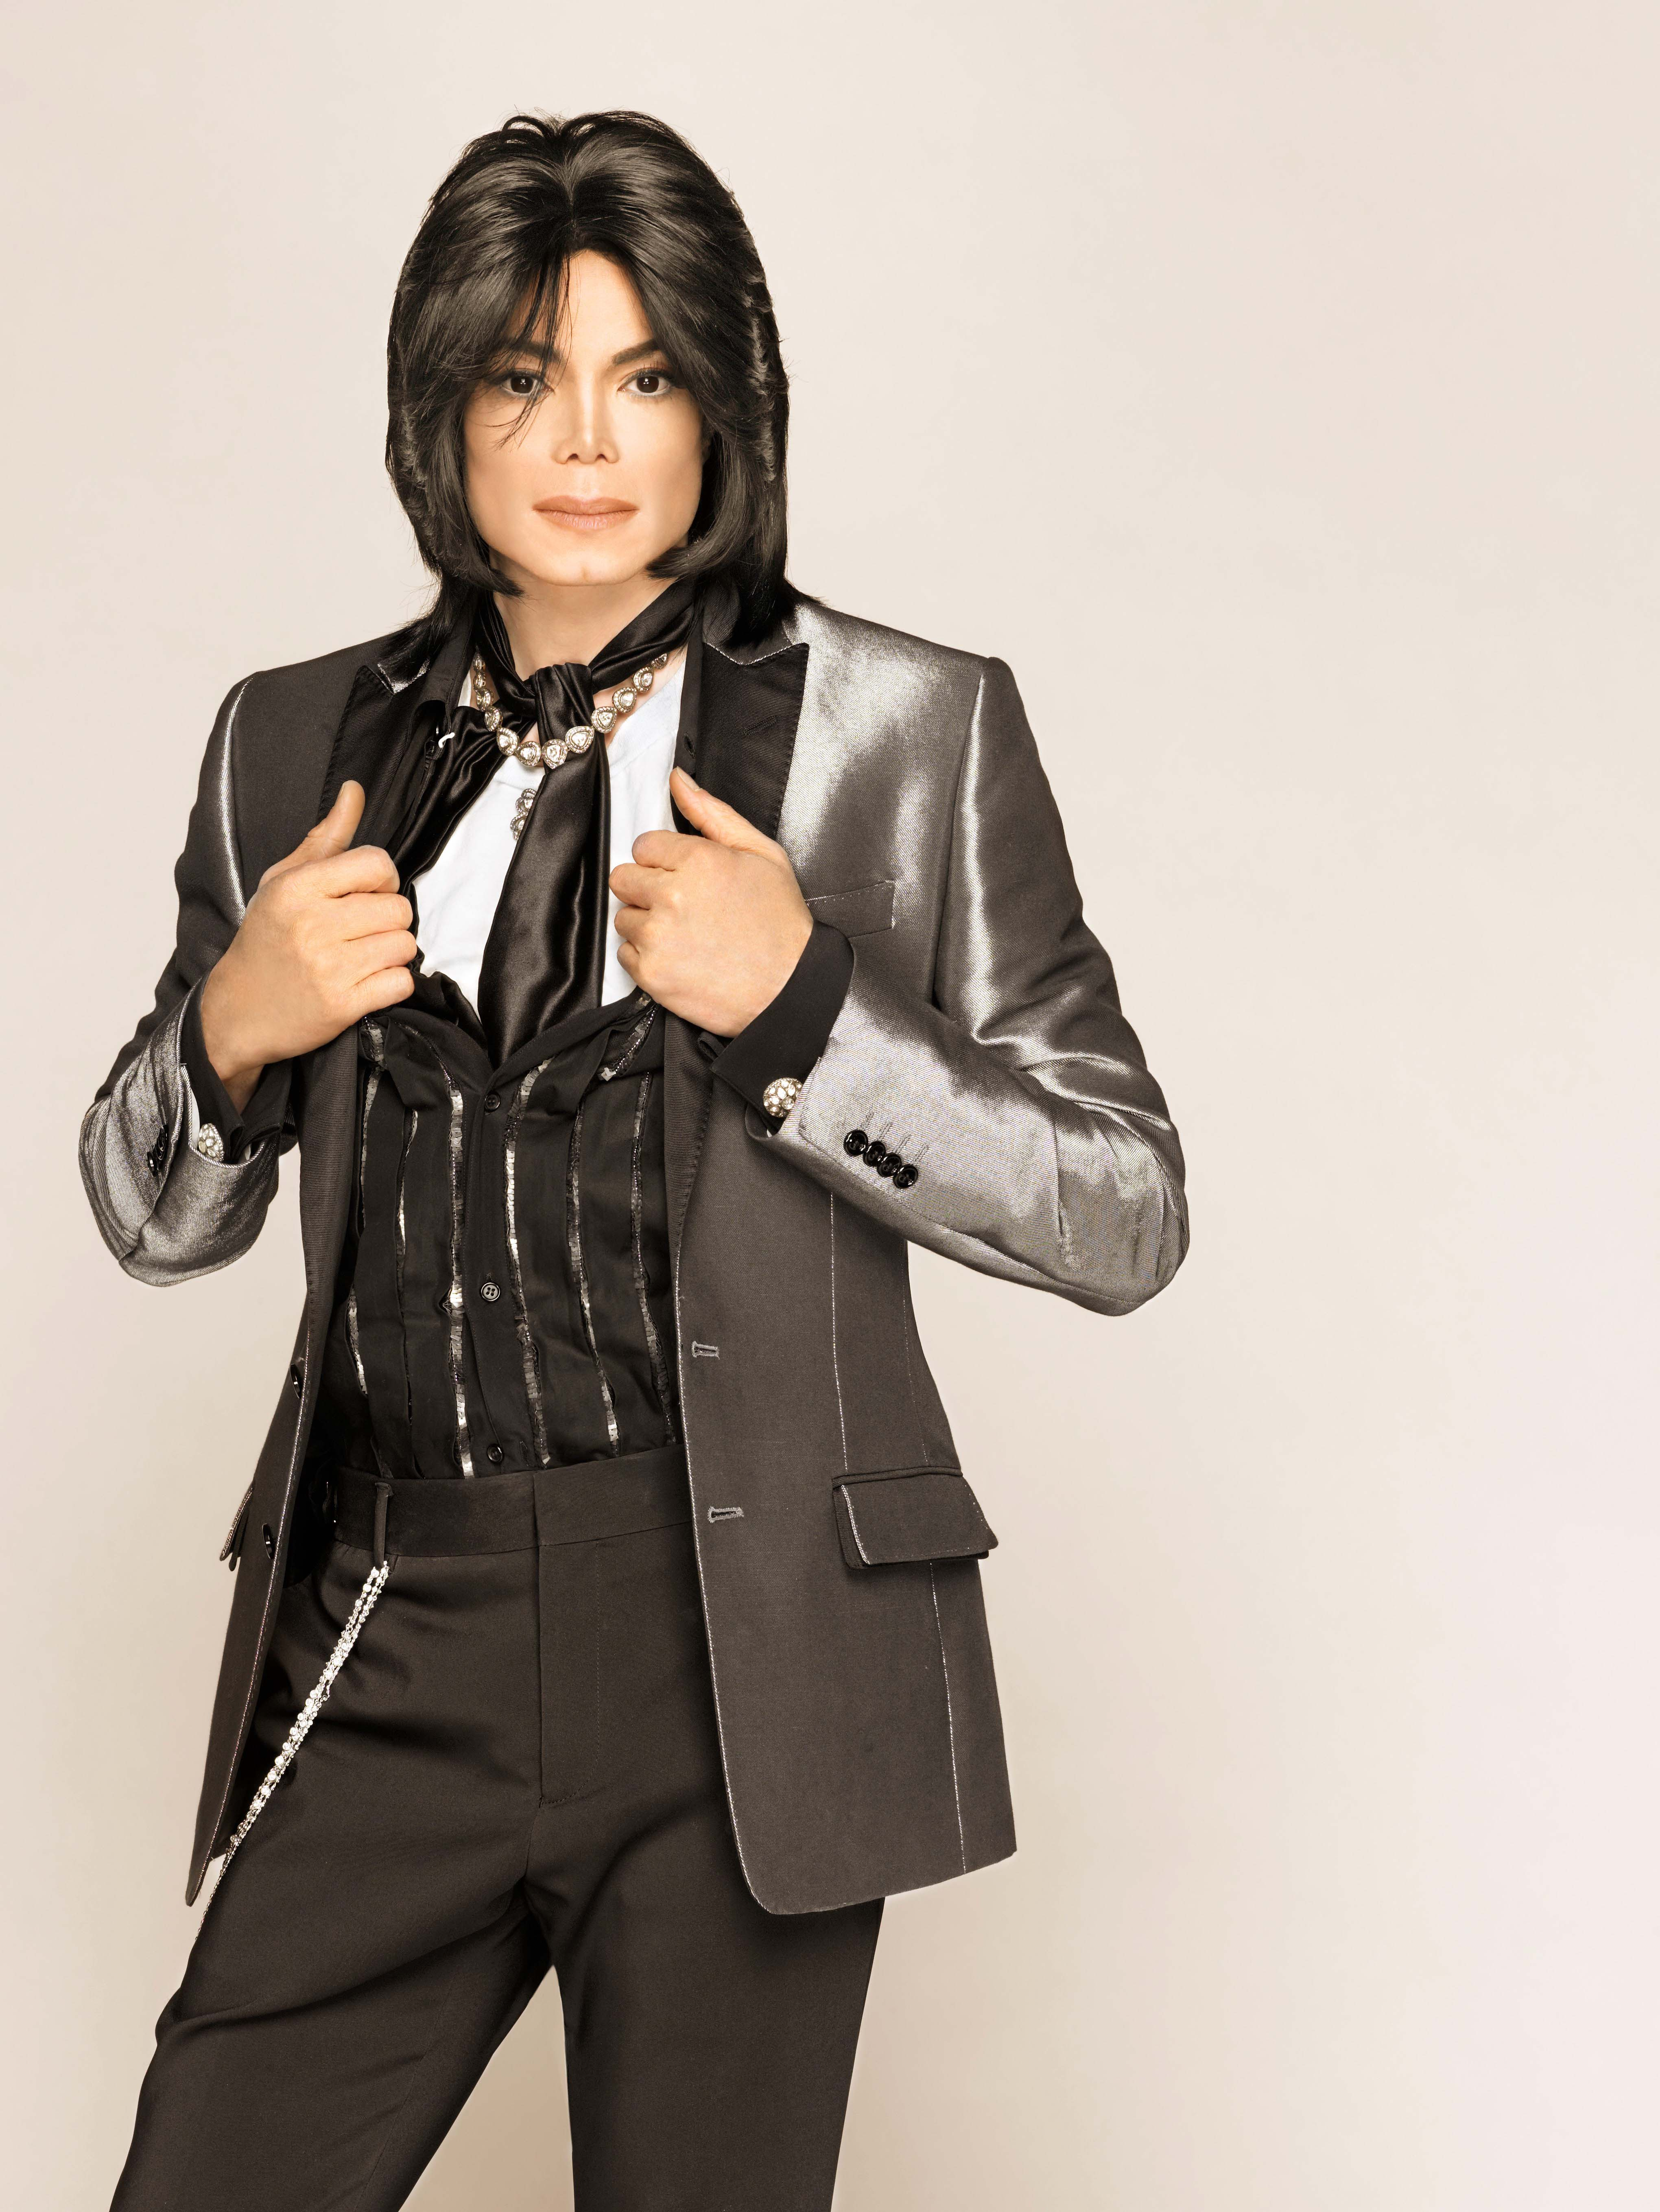 Michael Jackson photo, pics, wallpaper - photo #